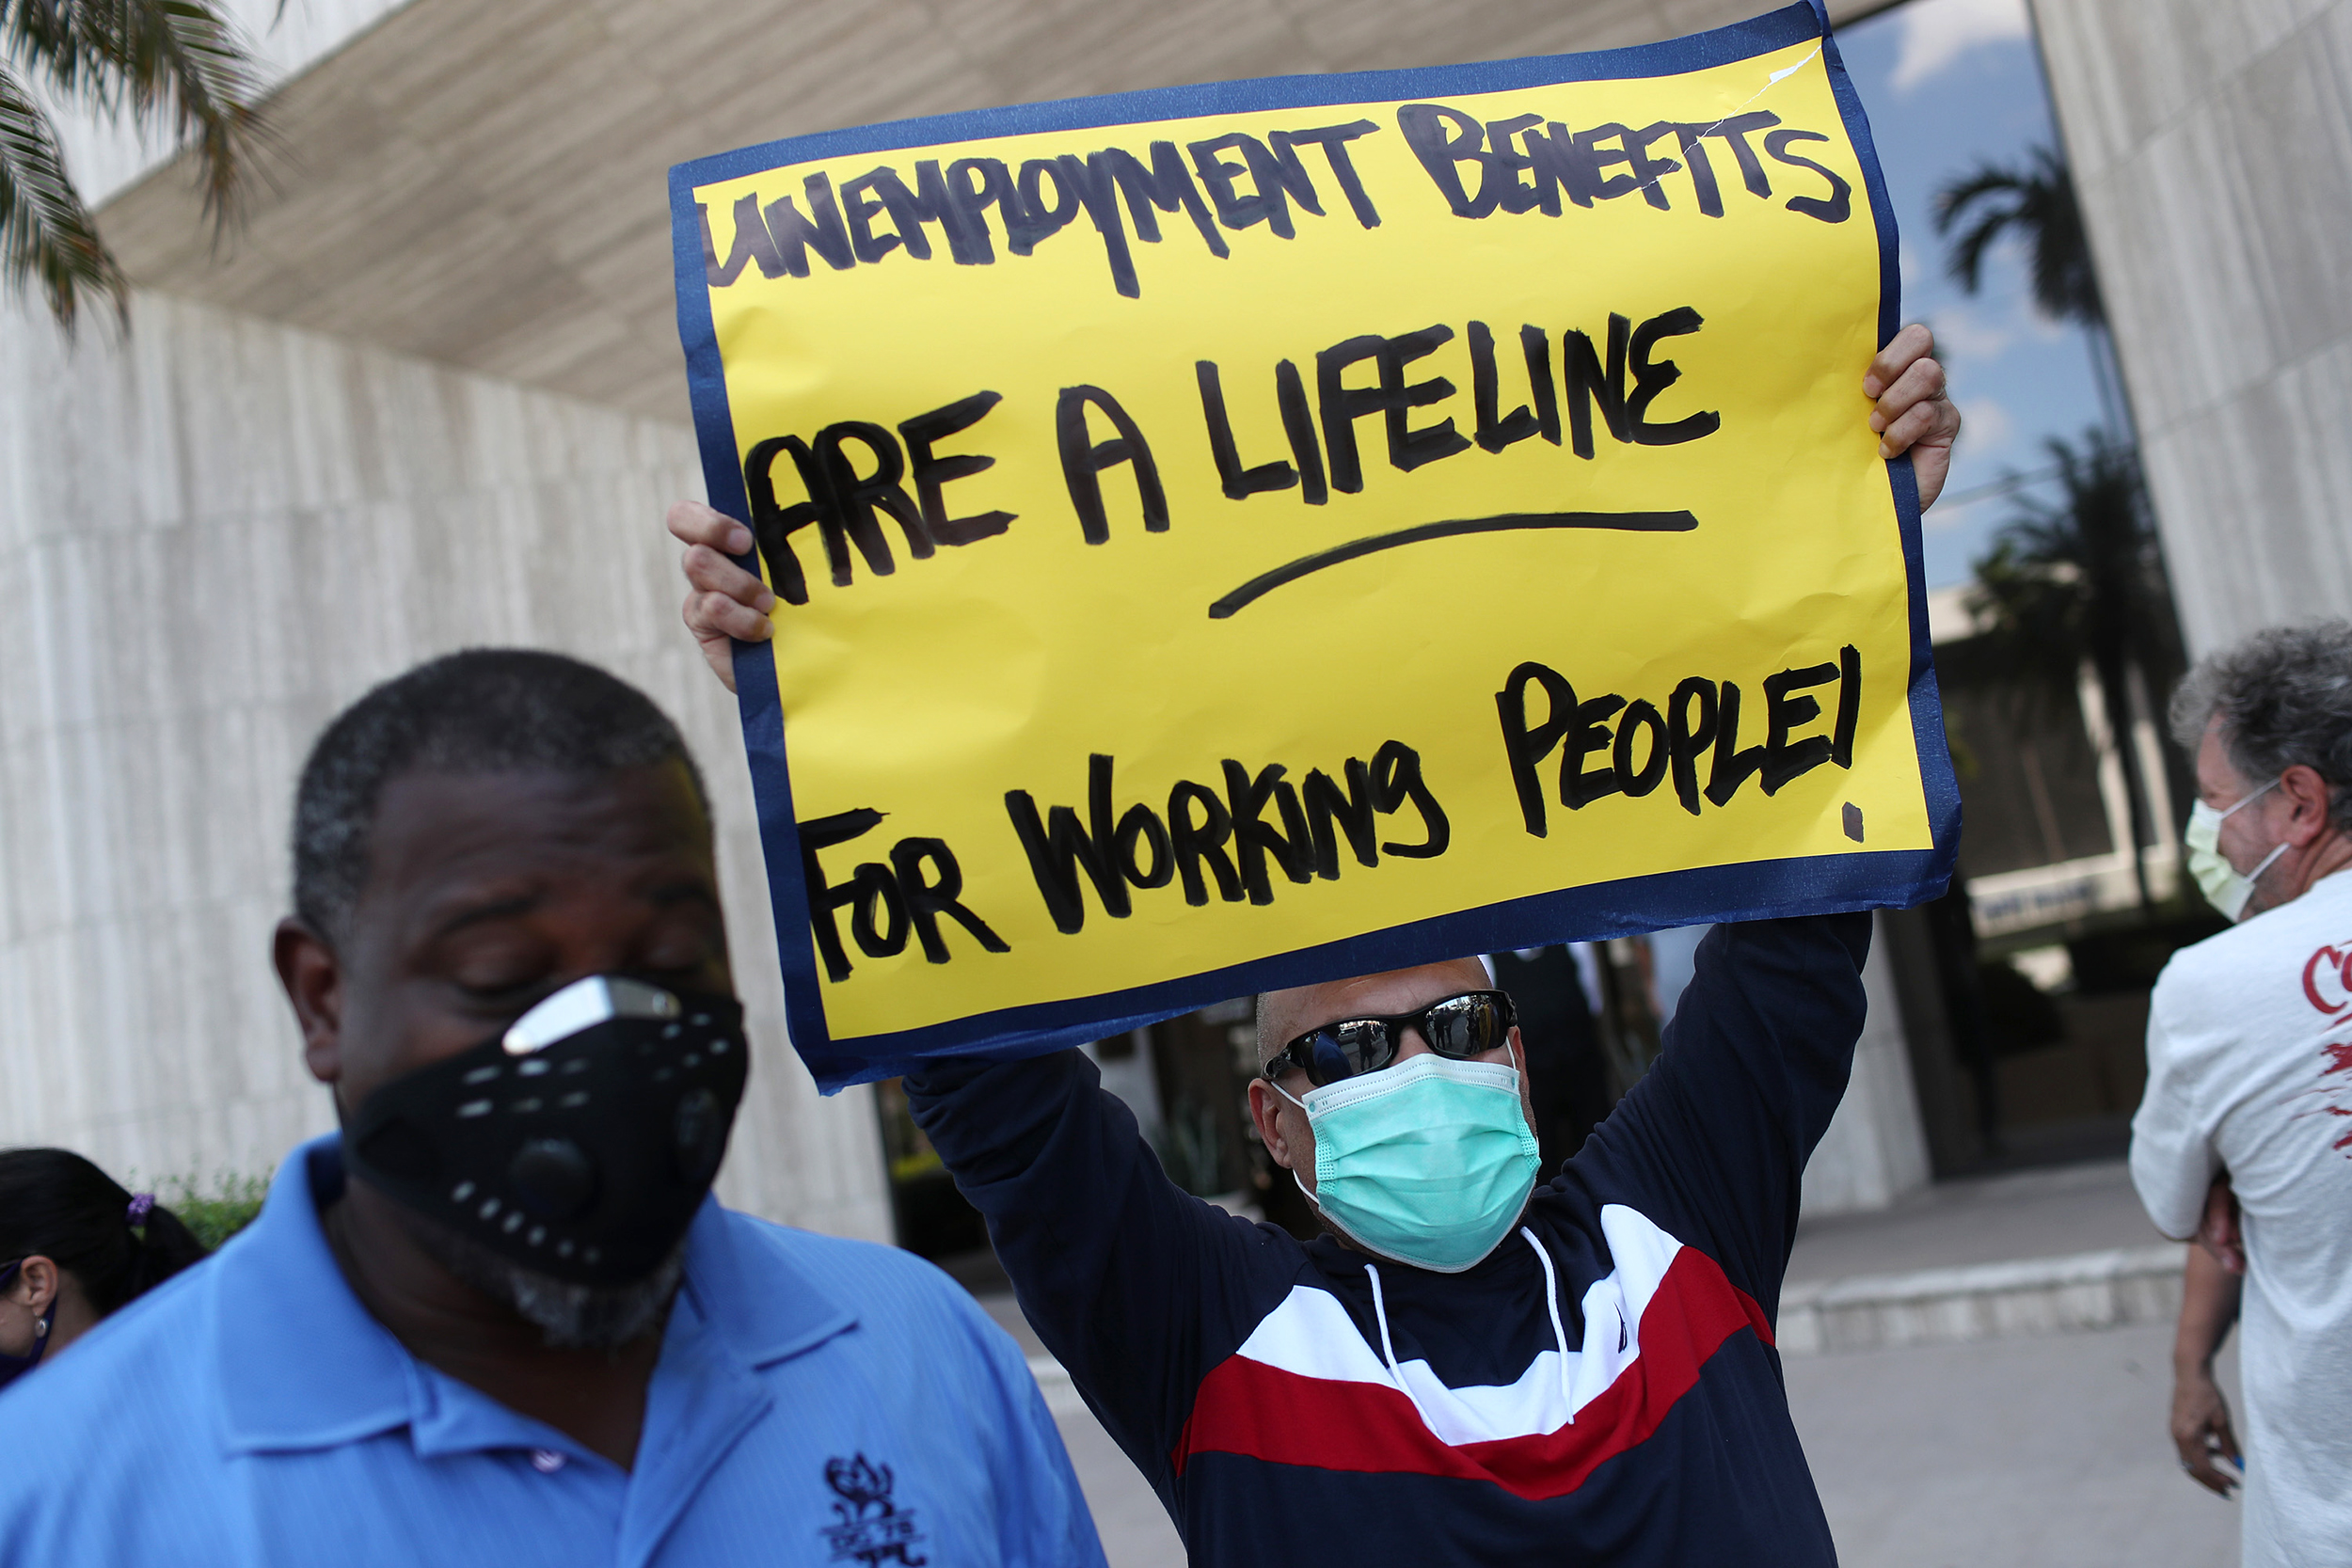 Pandemic unemployment benefits just expired. What will families do now?